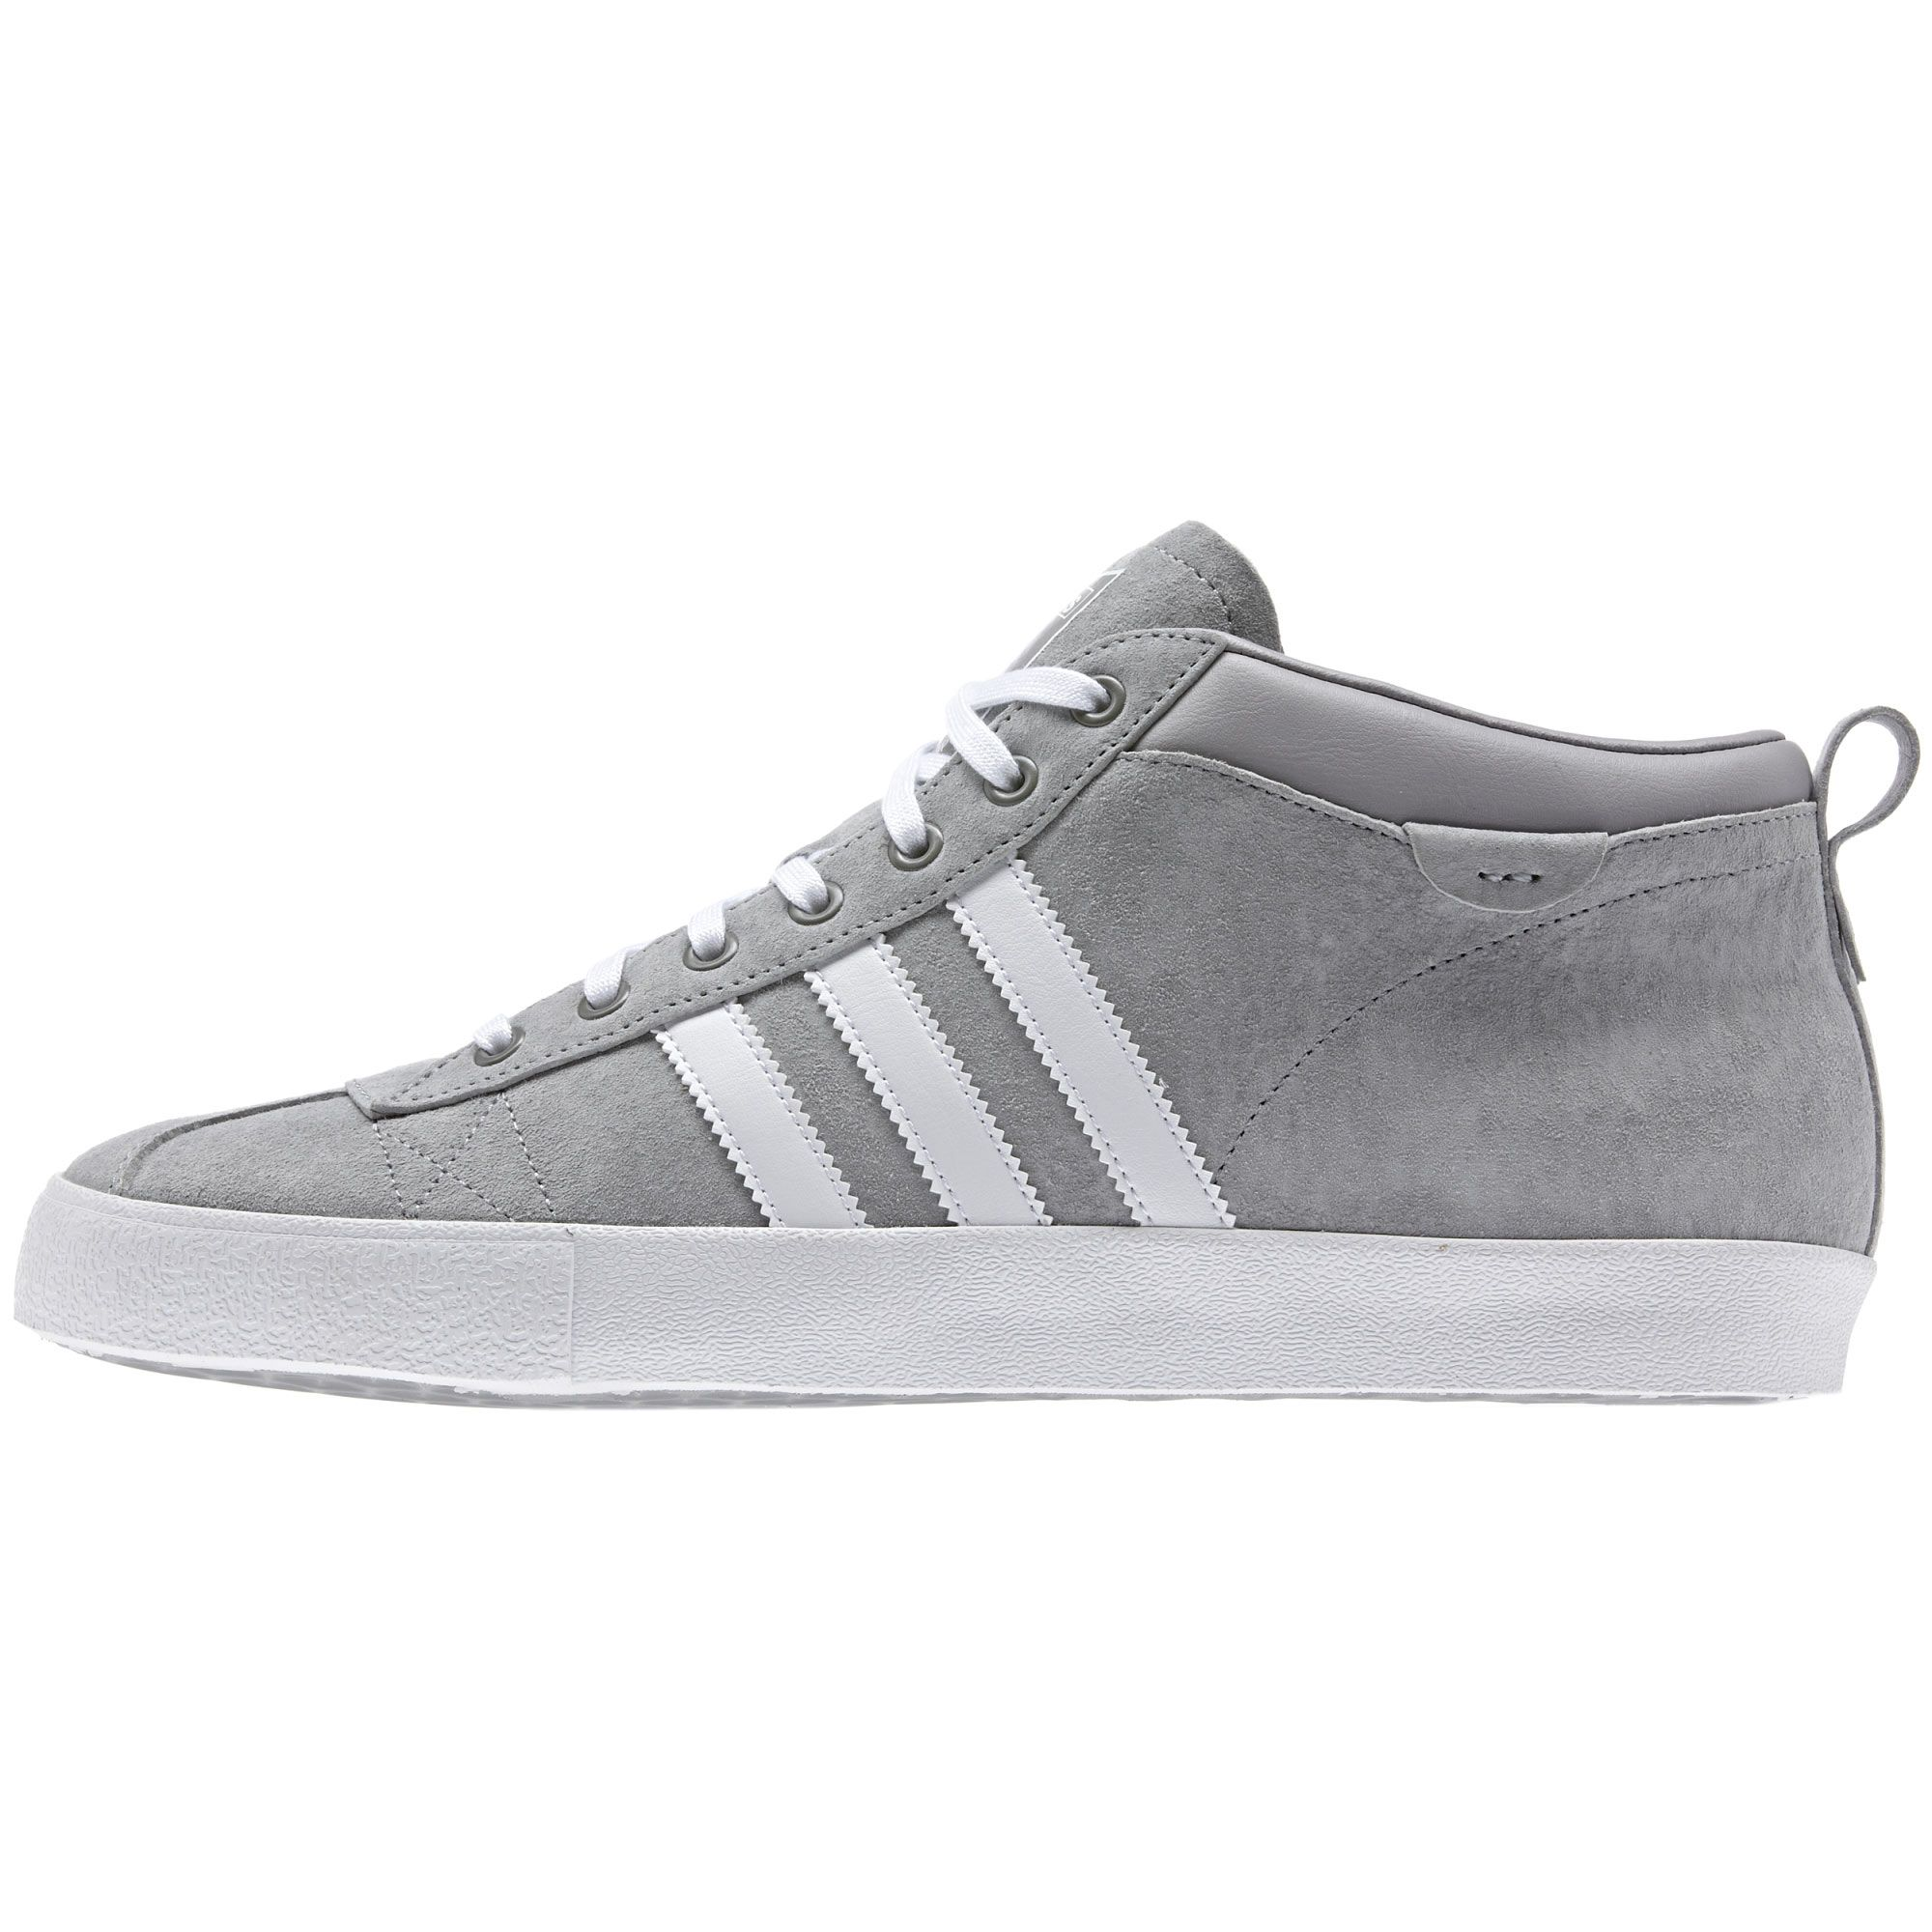 adidas gazelle mens trainers nz